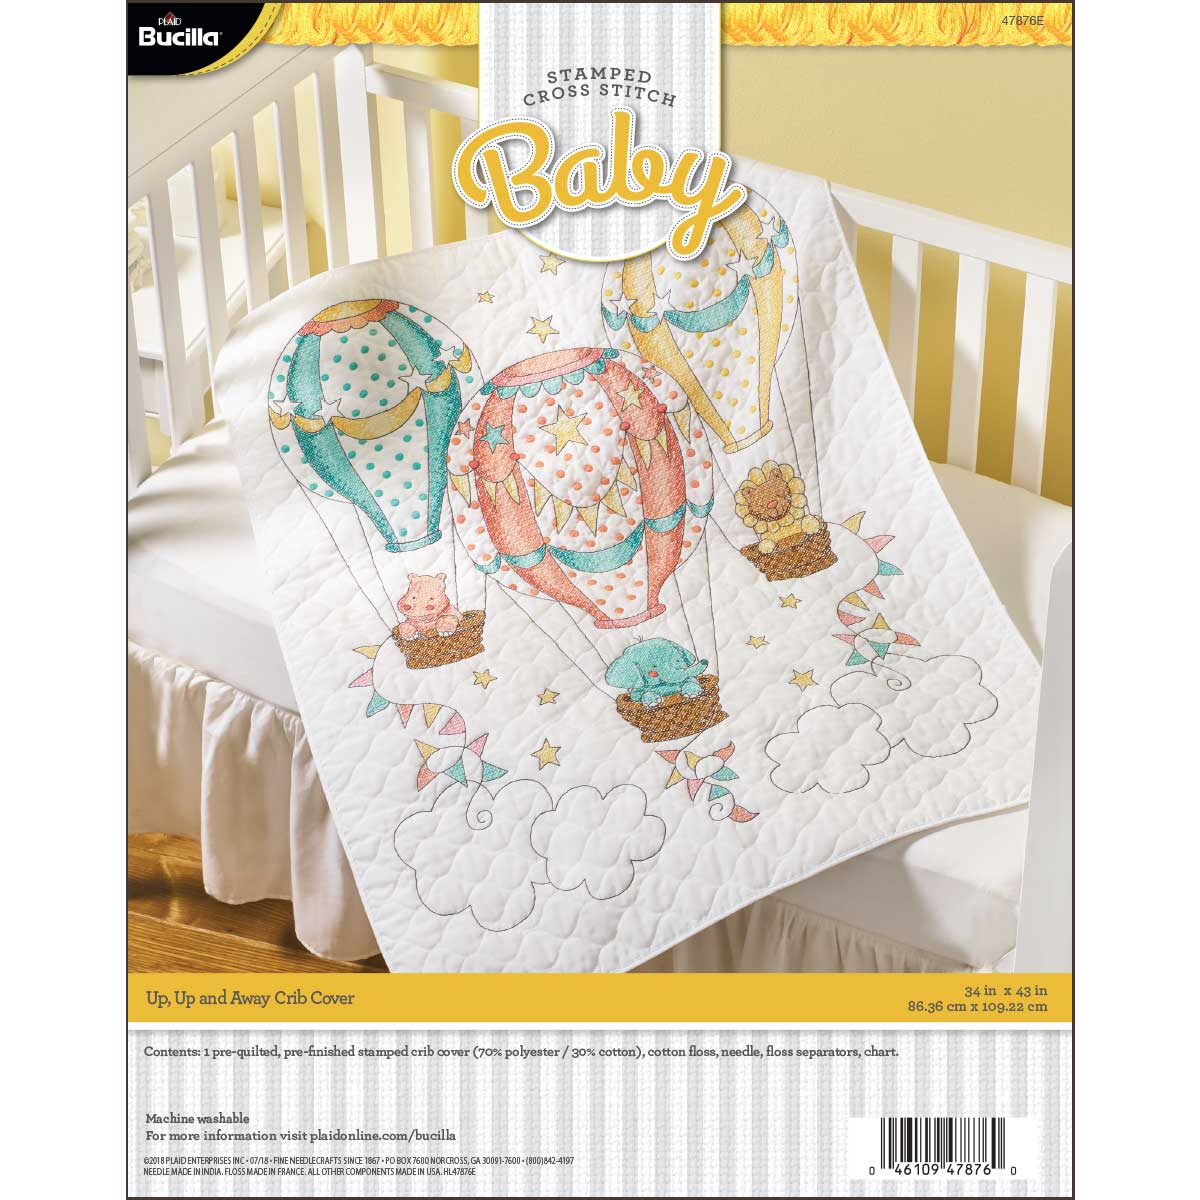 Bucilla ® Baby - Stamped Cross Stitch - Crib Ensembles - Up Up and Away - Crib Cover - 47876E